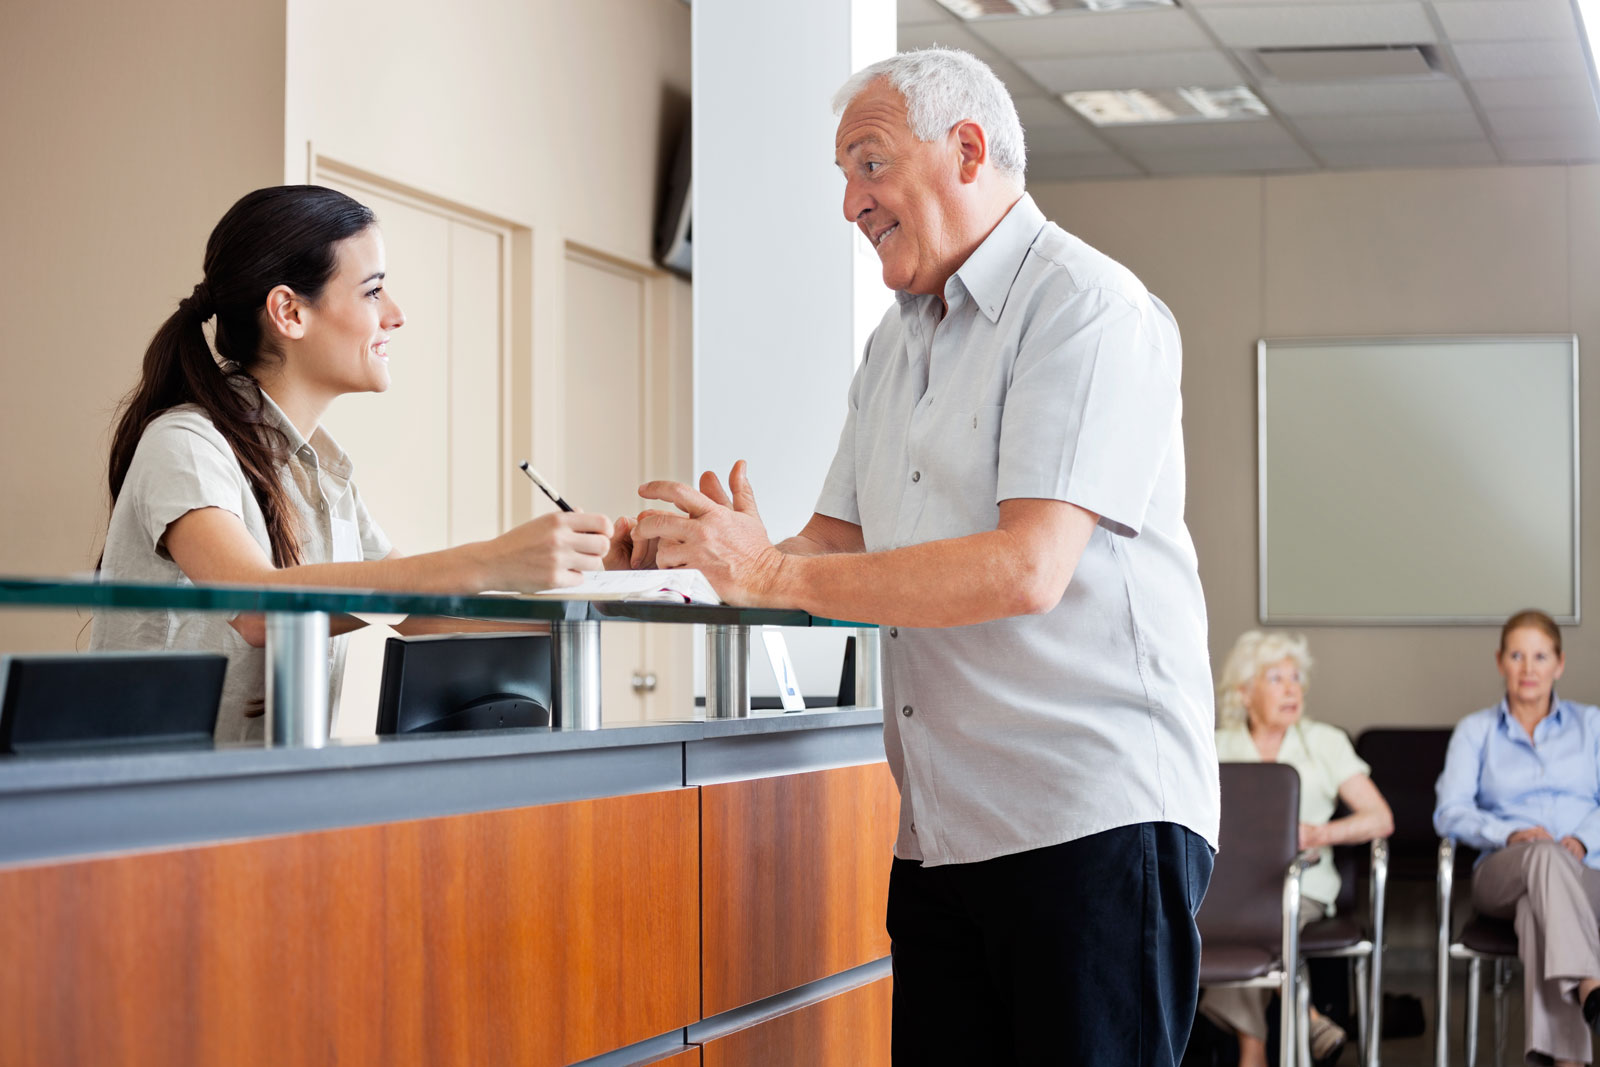 receptionist talking with older patient